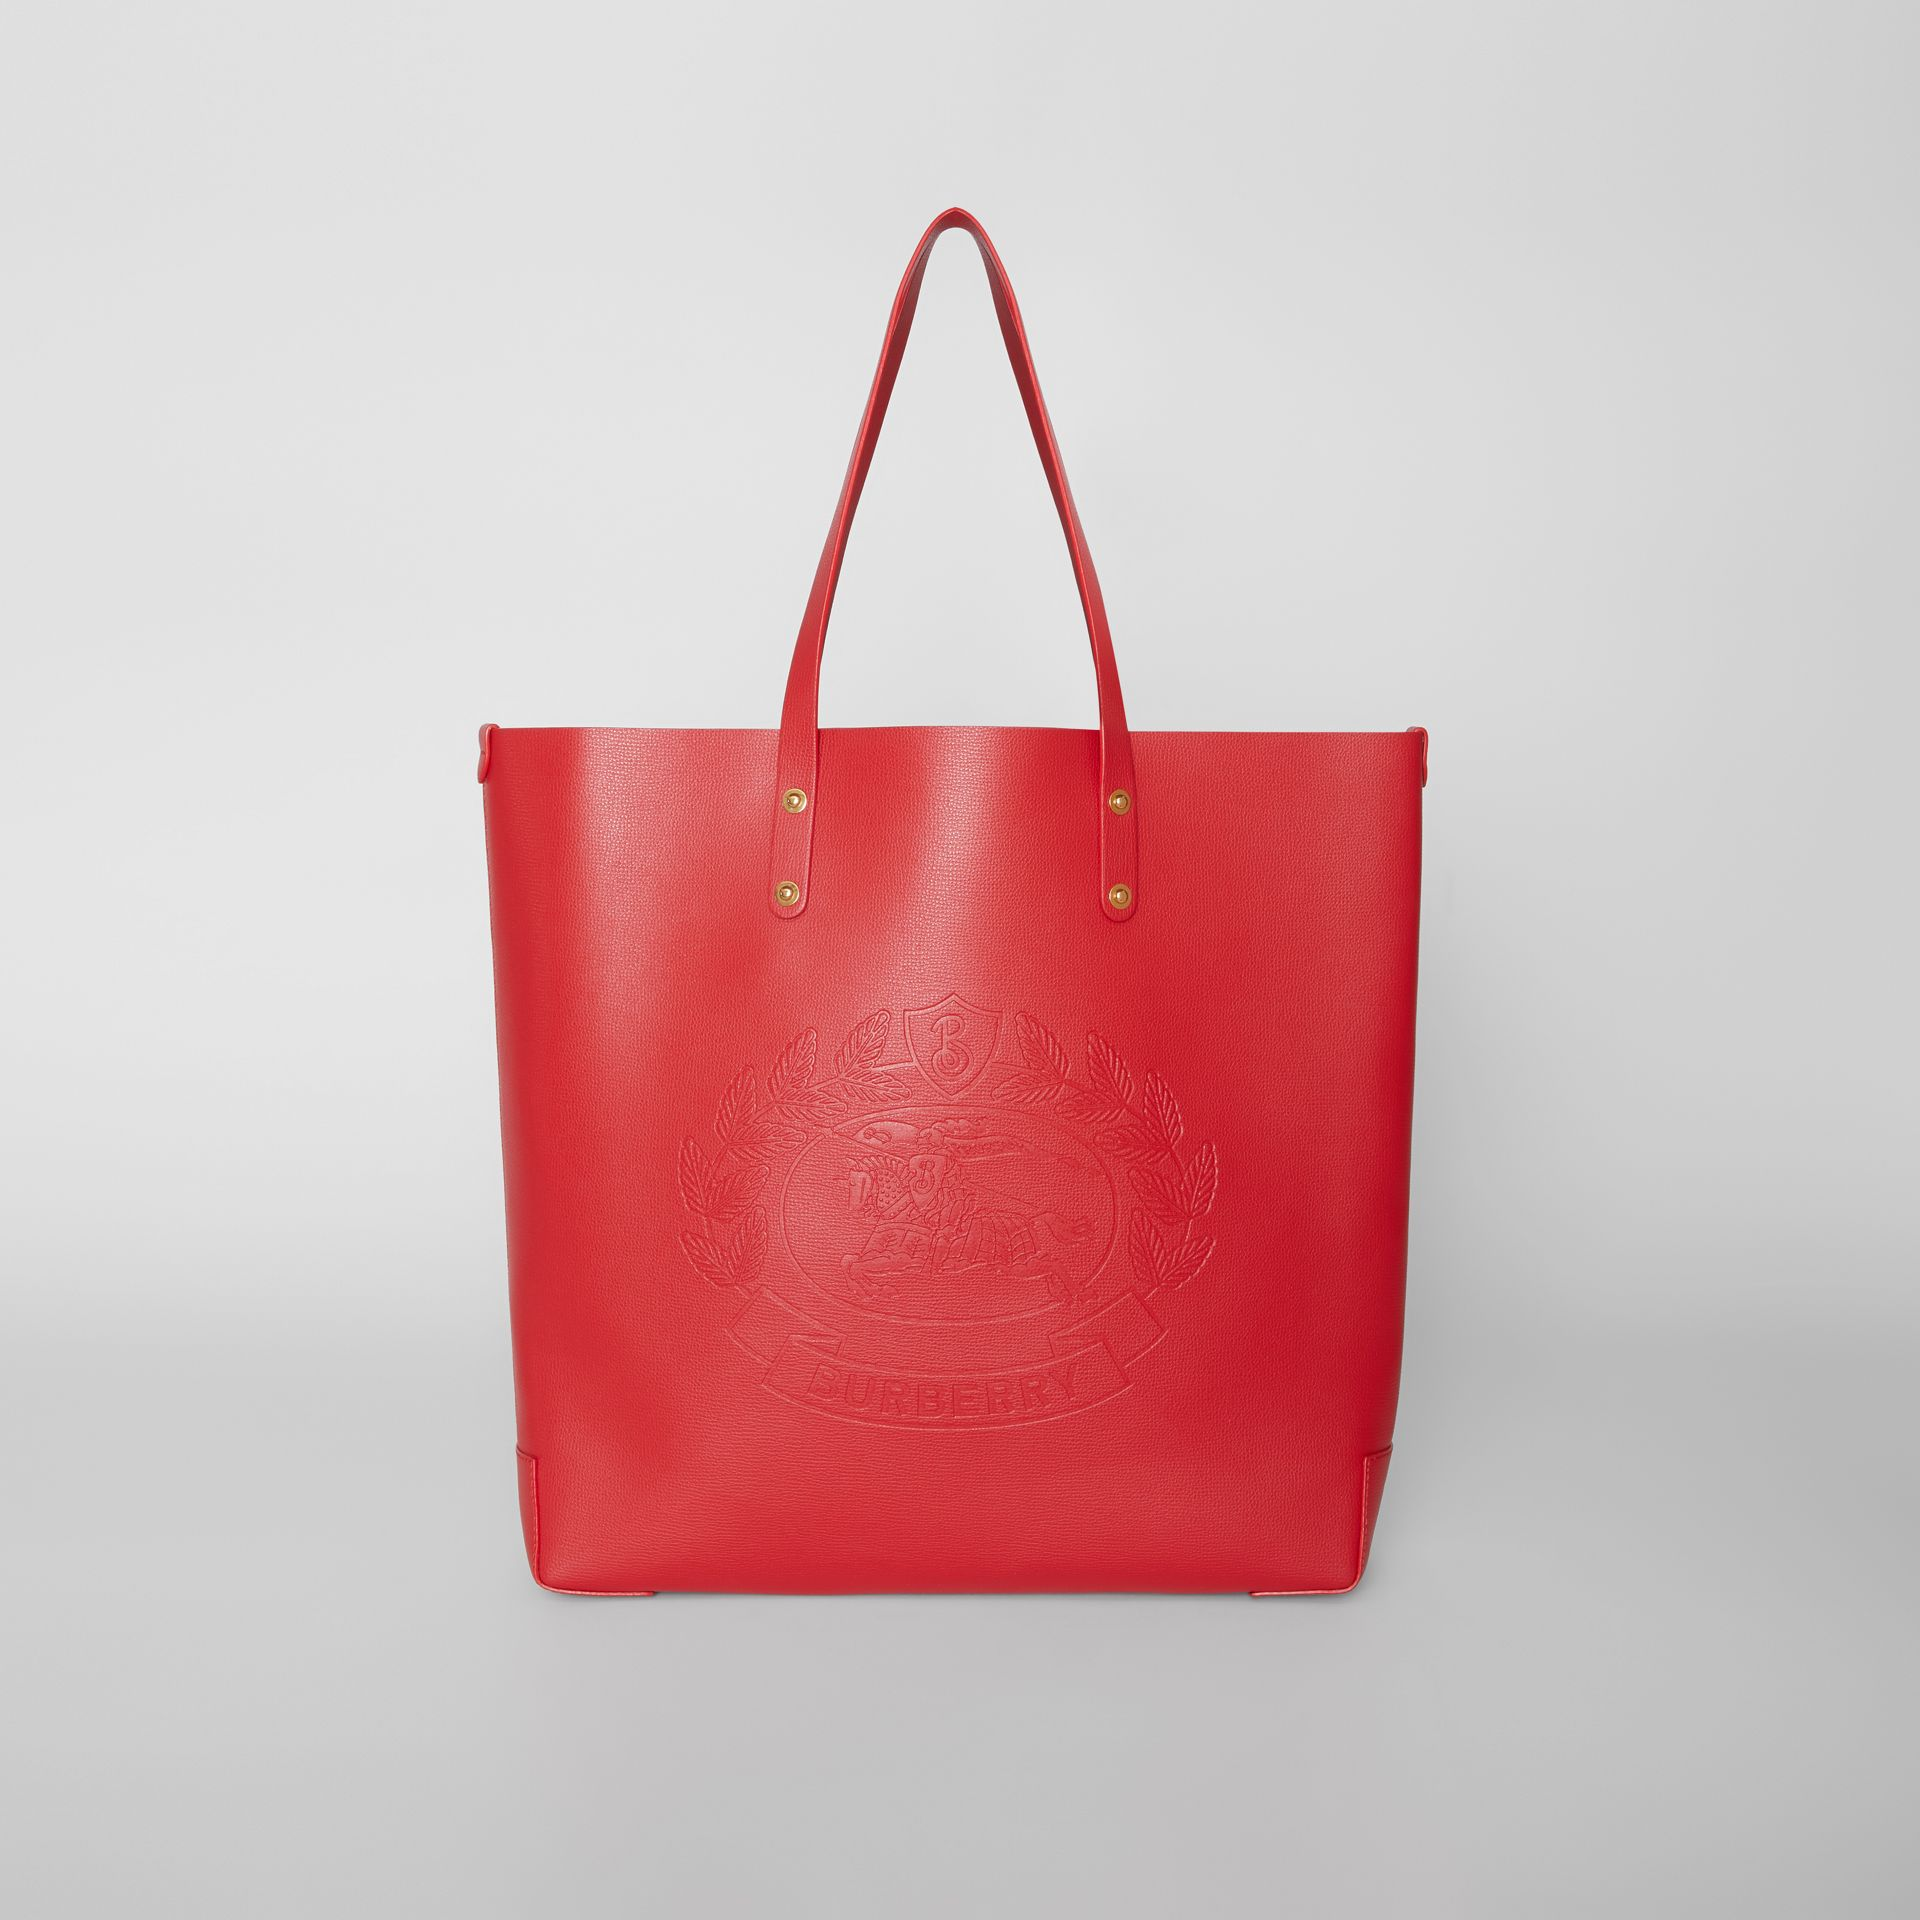 Grand sac cabas en cuir avec écusson (Rouge Rouille) - Femme | Burberry - photo de la galerie 0